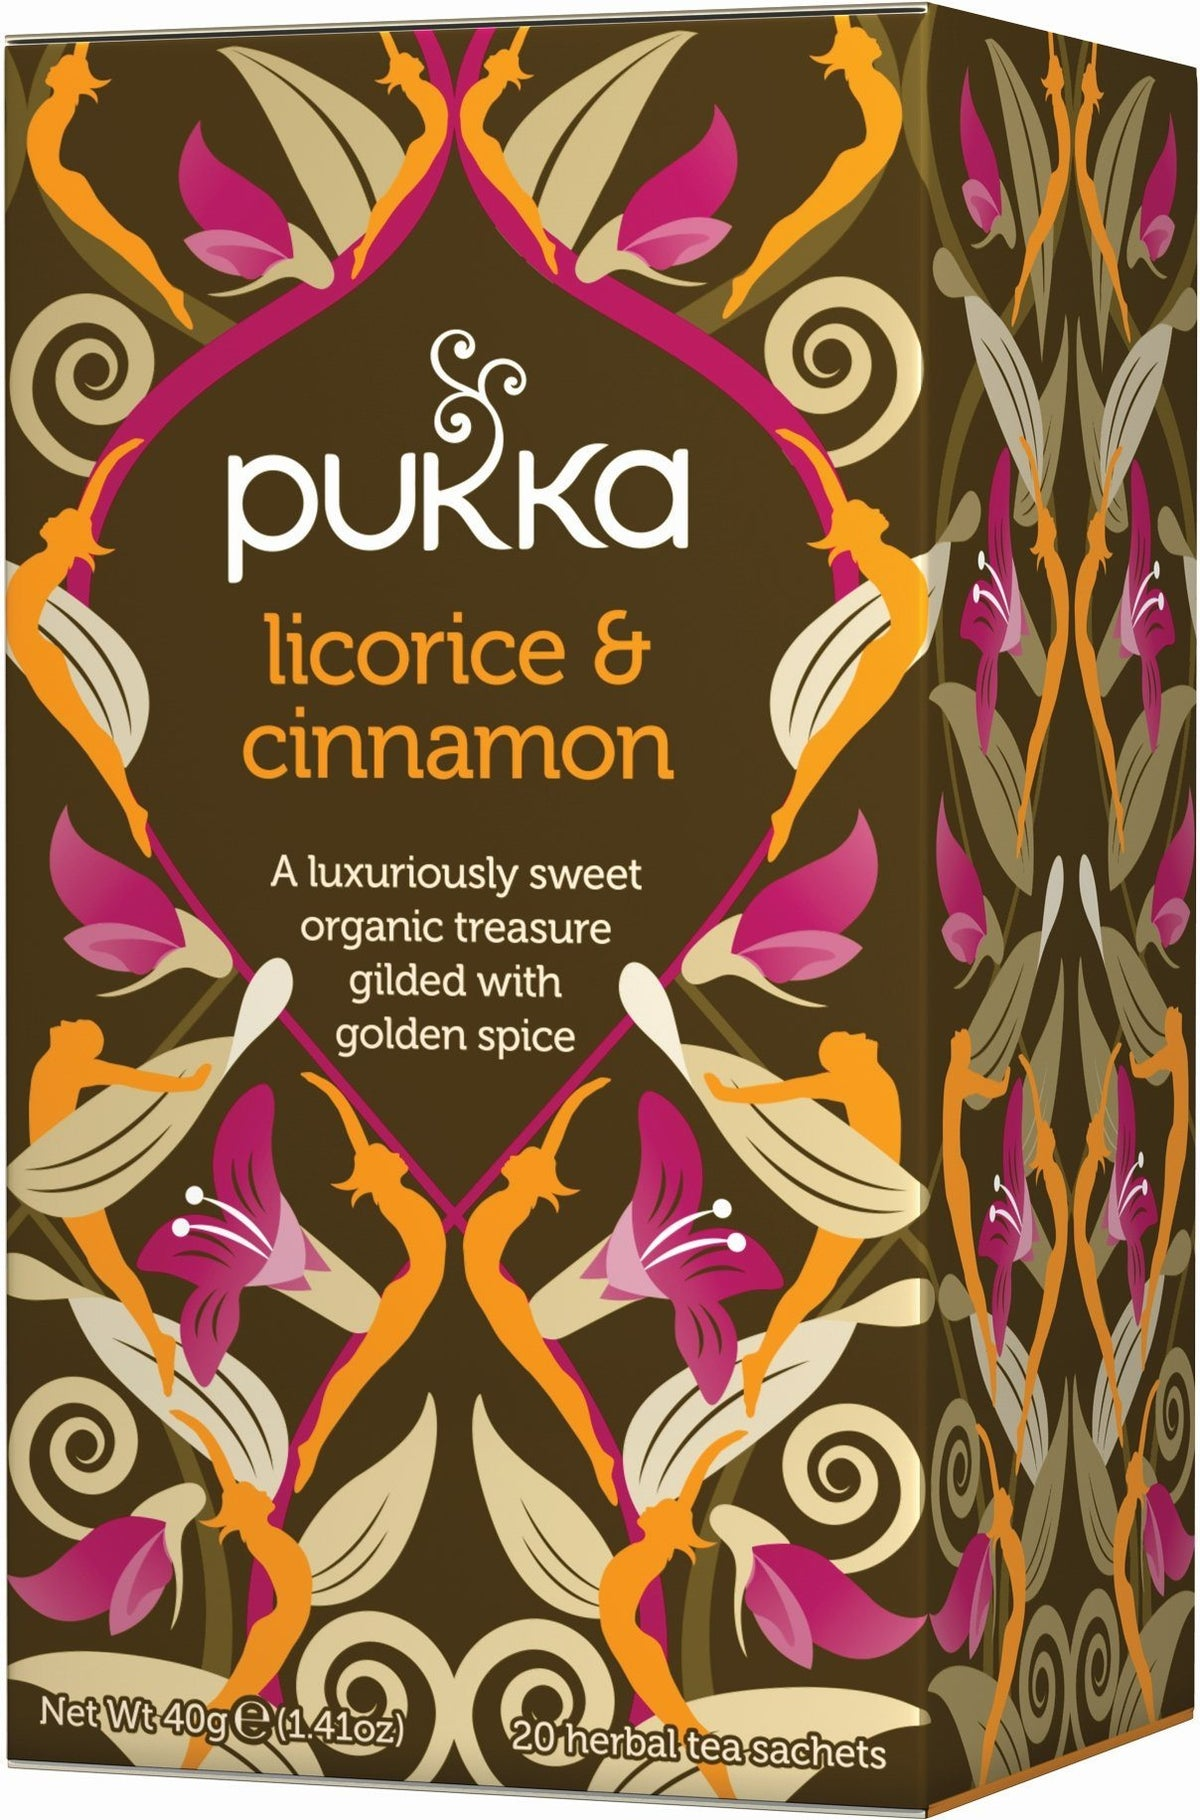 Pukka Licorice & Cinnamon 20 Tea Sachets